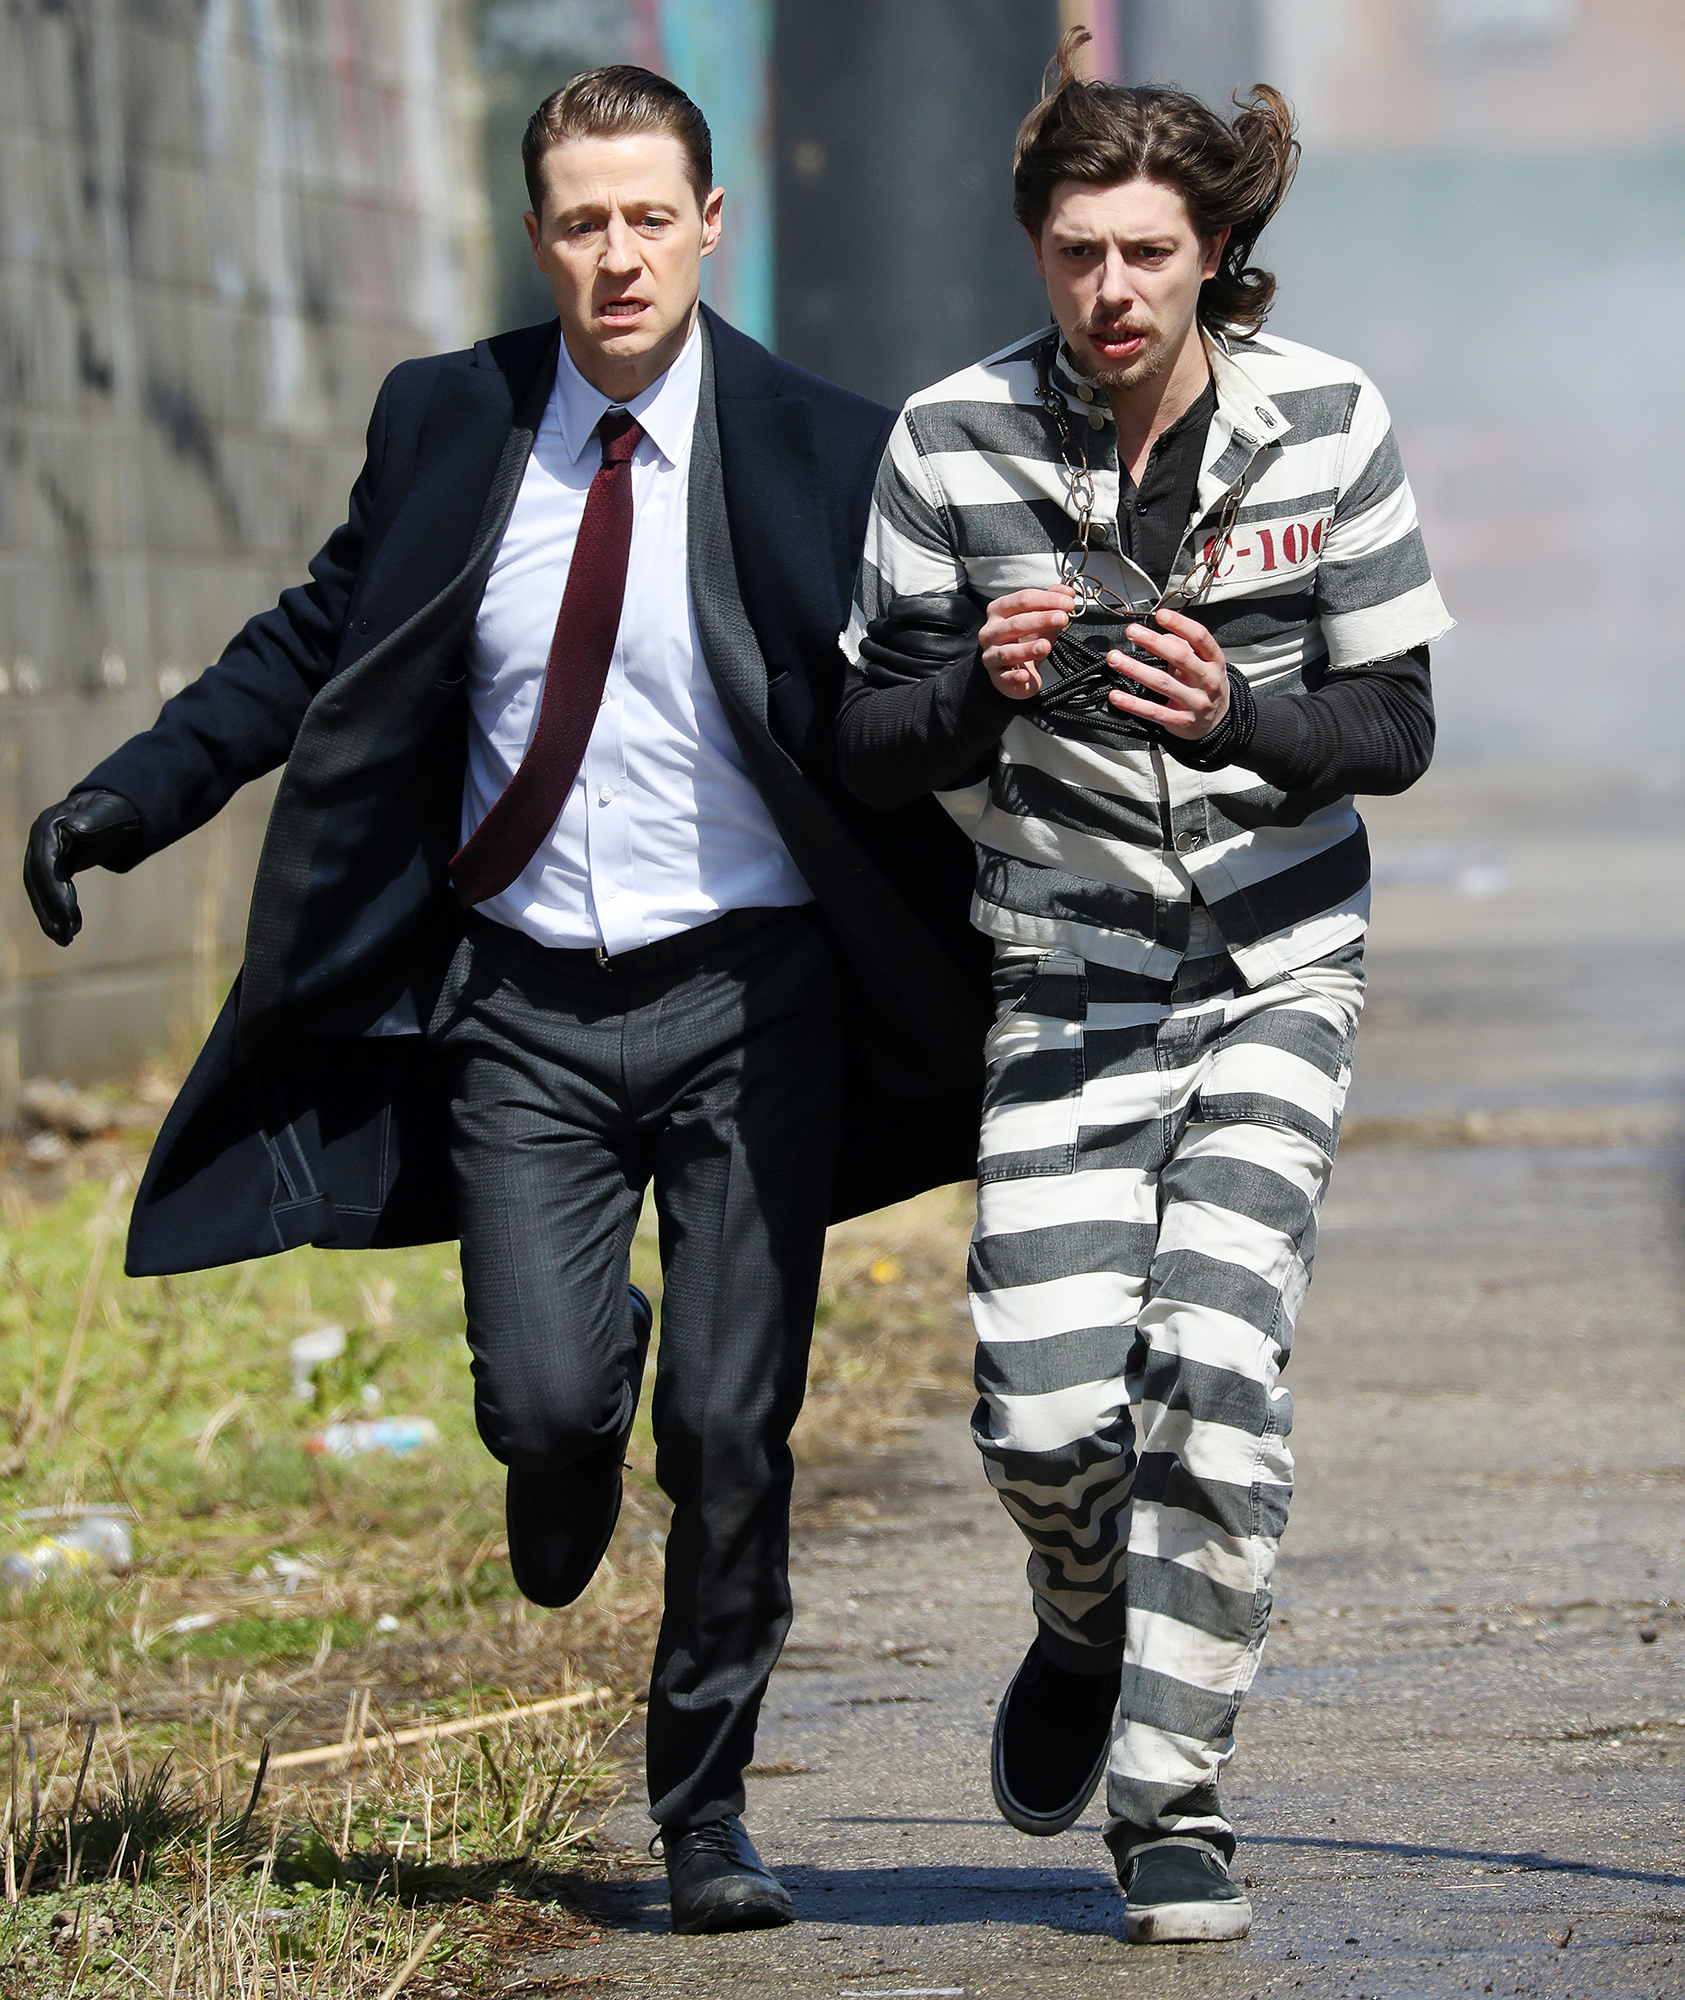 EXCLUSIVE: Ben McKenzie and Donal Logue Film a Shootout on Set of 'Gotham'